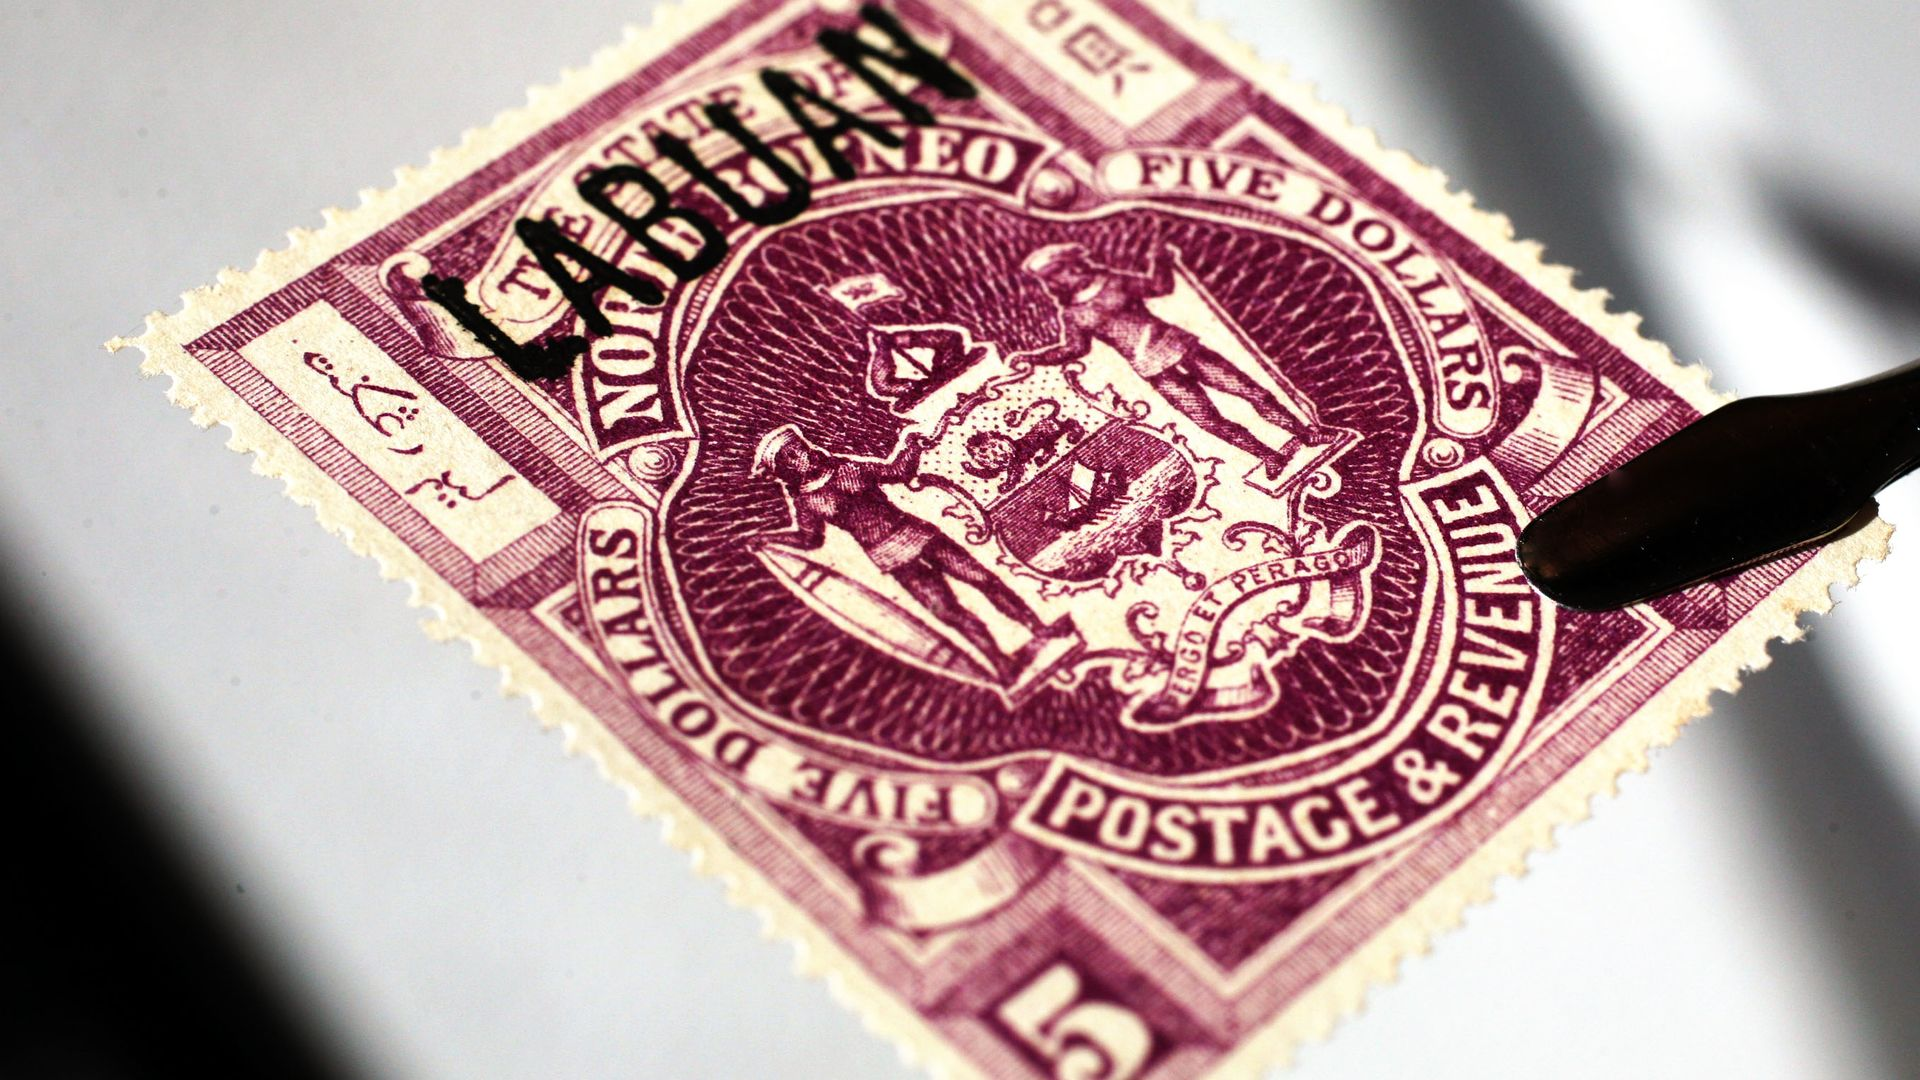 SG Stamps high res 05